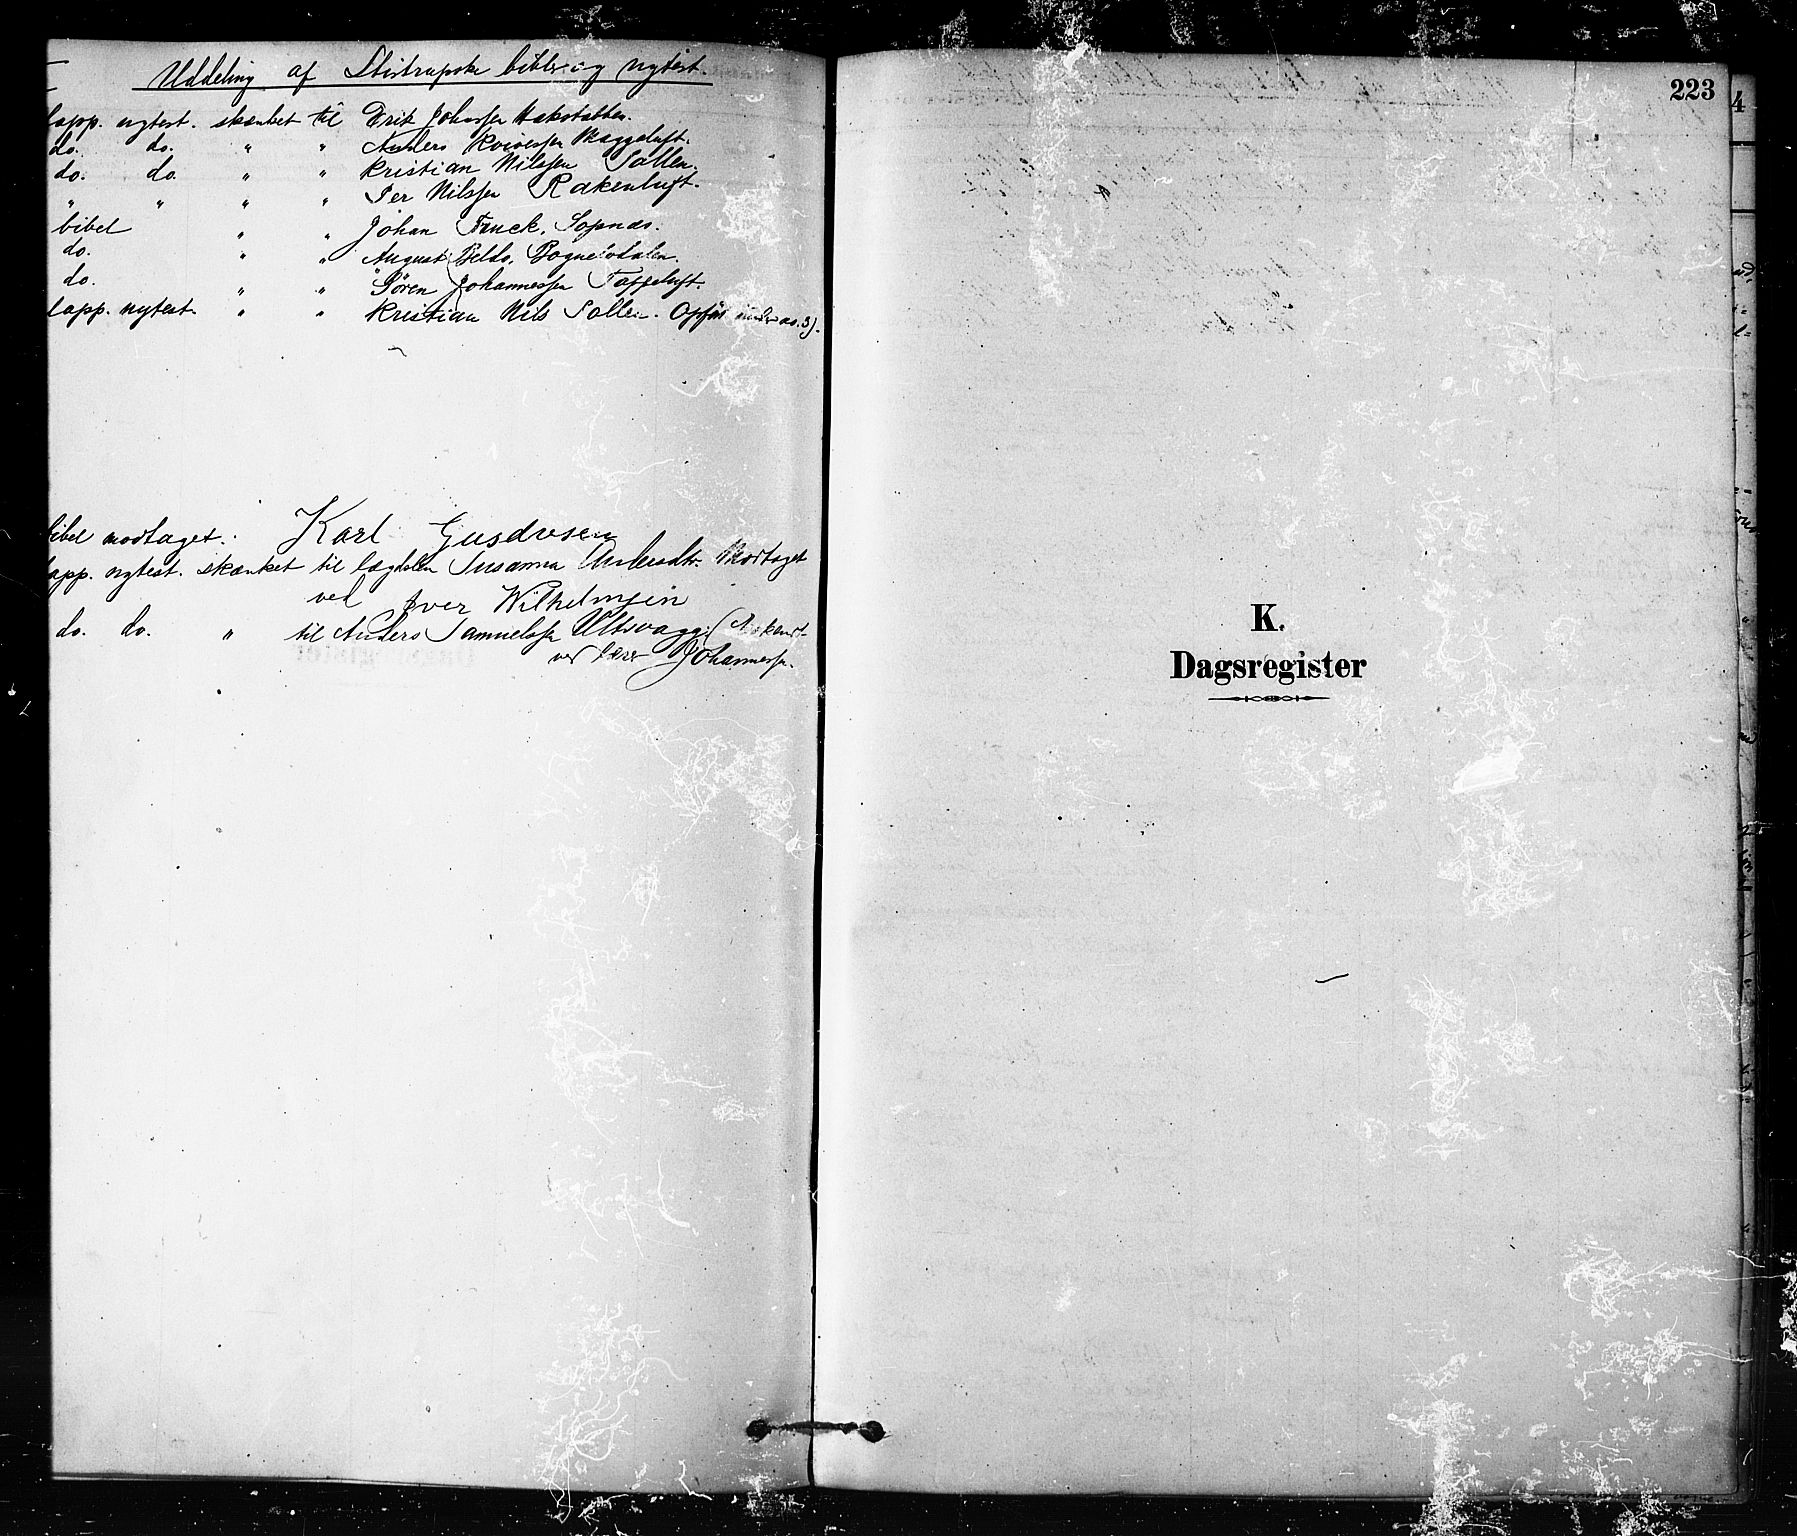 SATØ, Talvik sokneprestkontor, H/Ha/L0012kirke: Parish register (official) no. 12, 1878-1886, p. 223